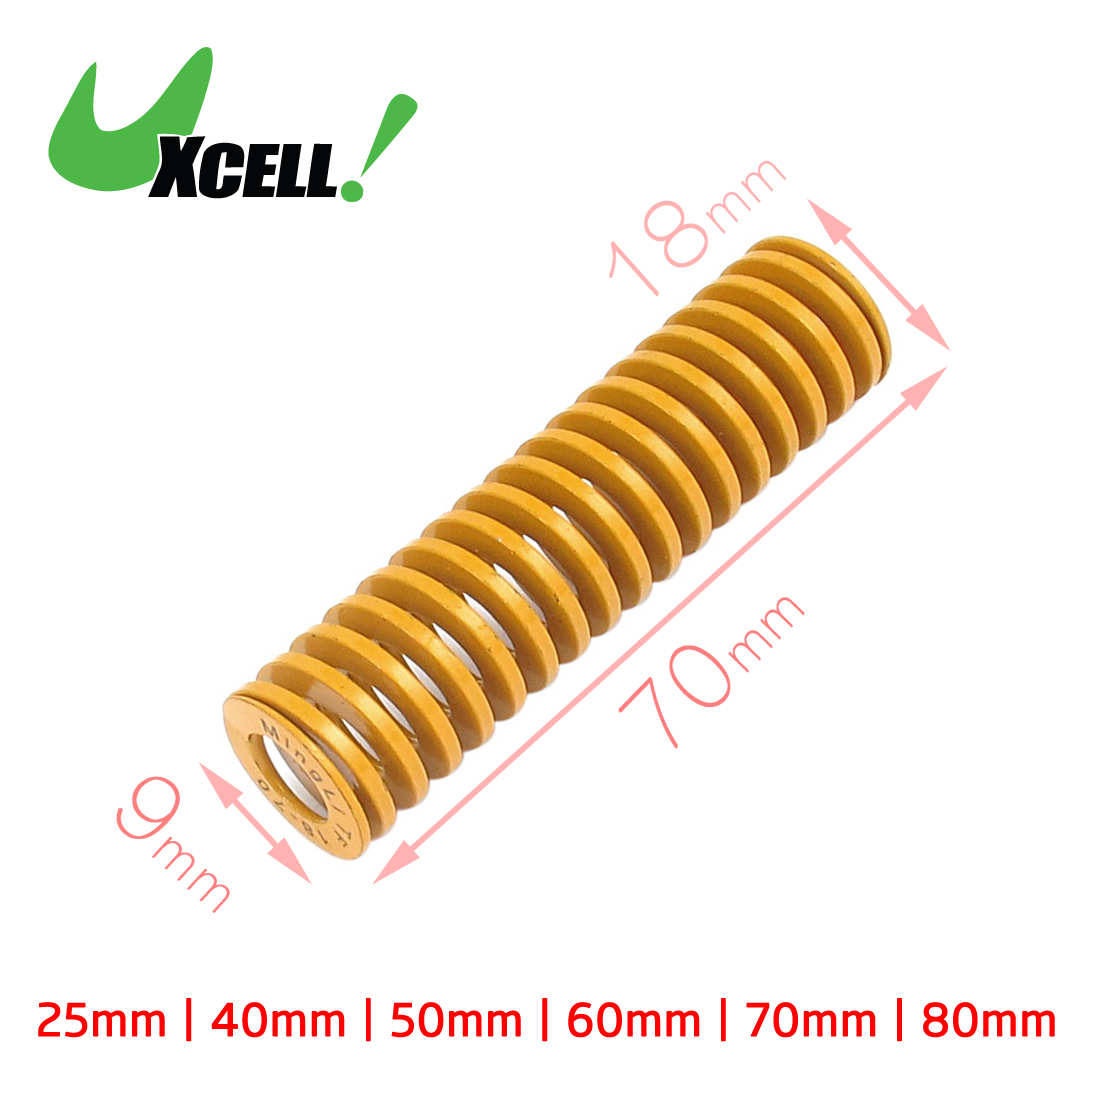 Uxcell Od 18mm Id 9mm Chromium Alloy Steel Mould Die Spring Yellow Long 25mm 45mm 65mm 70mm 80mm 90mm